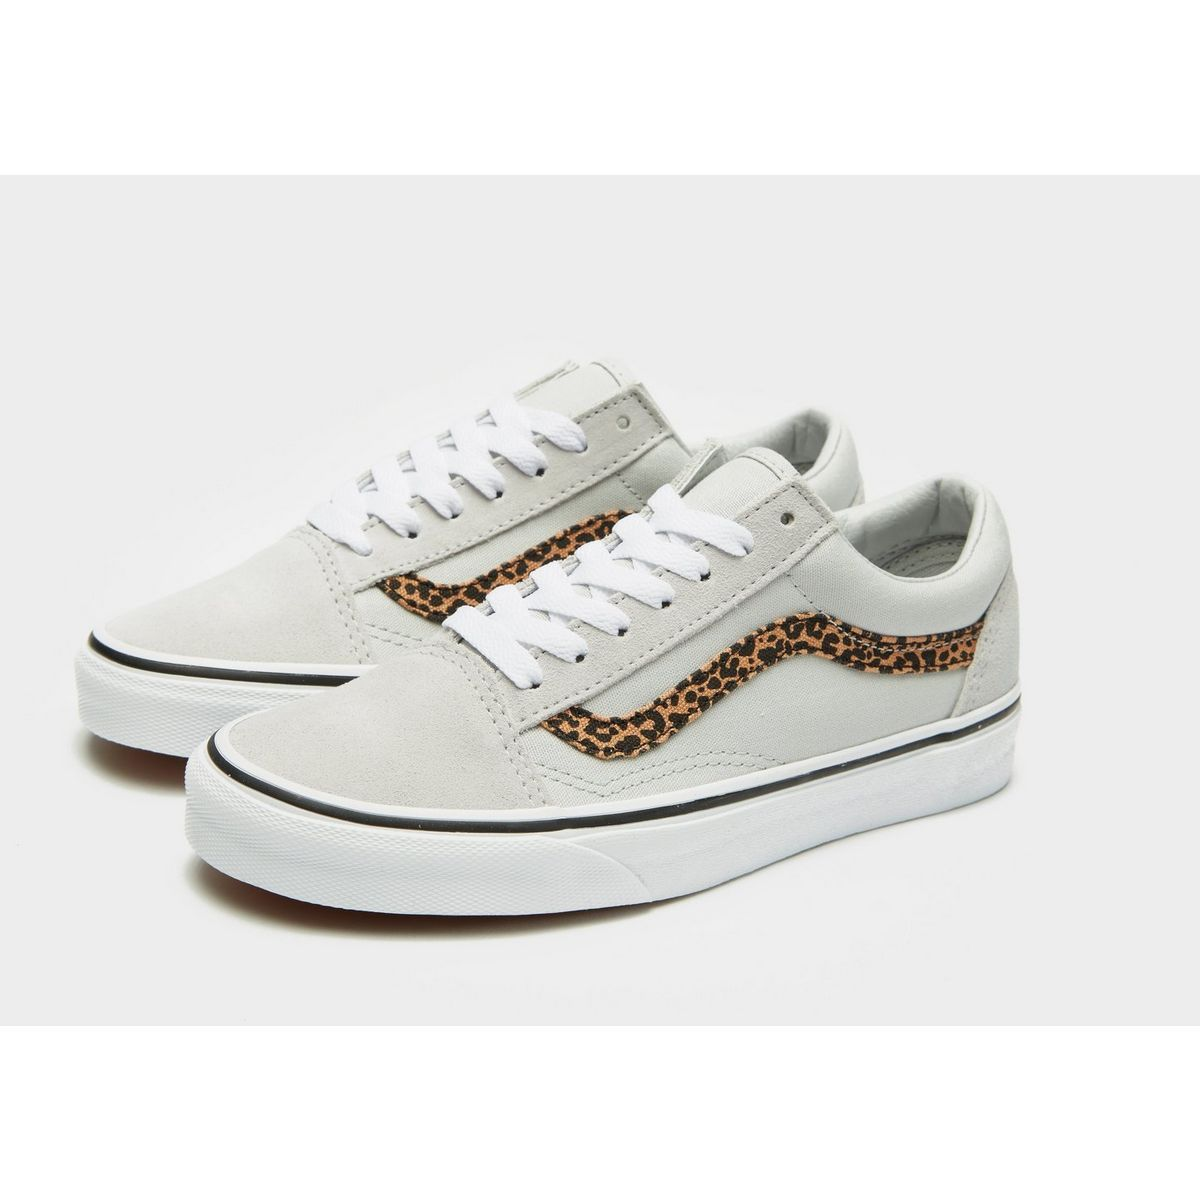 fantastisk pris stor rabat detaljering Vans Old Skool Women's | Dressy | Vans old skool, Jd sports ...